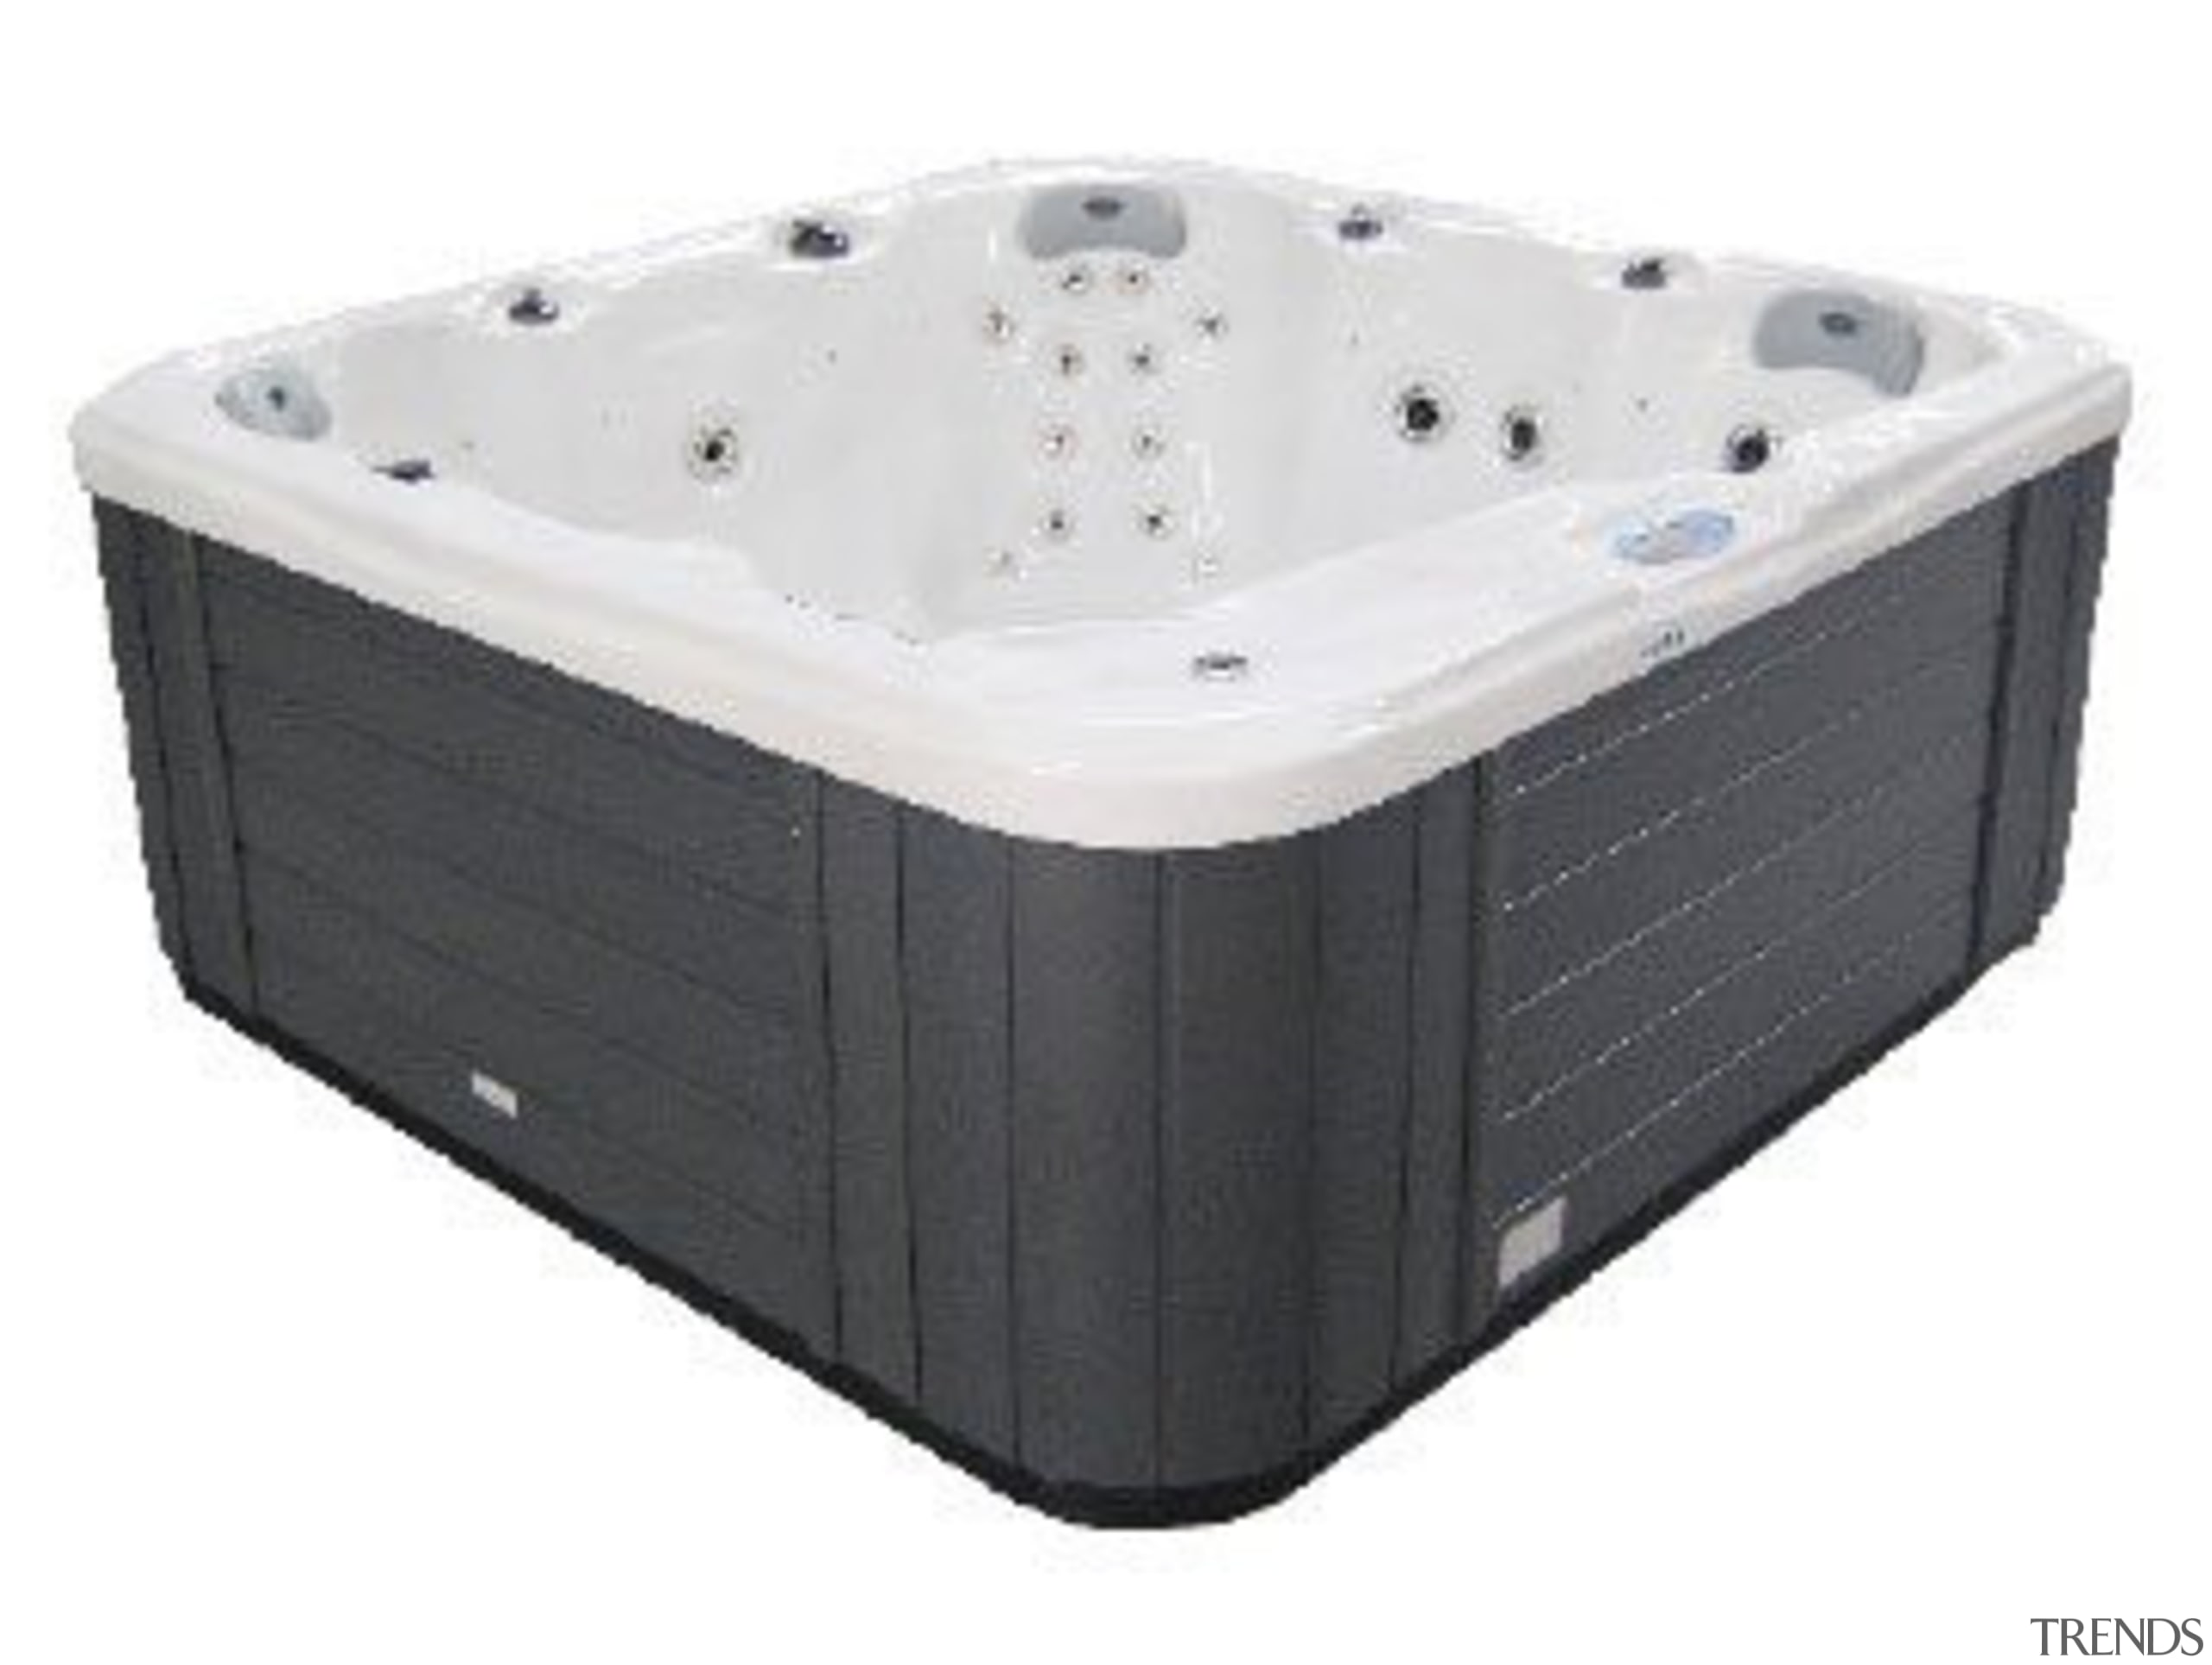 Quality Construction, Quality Controlled in NZ - Quality angle, bathtub, jacuzzi, product, white